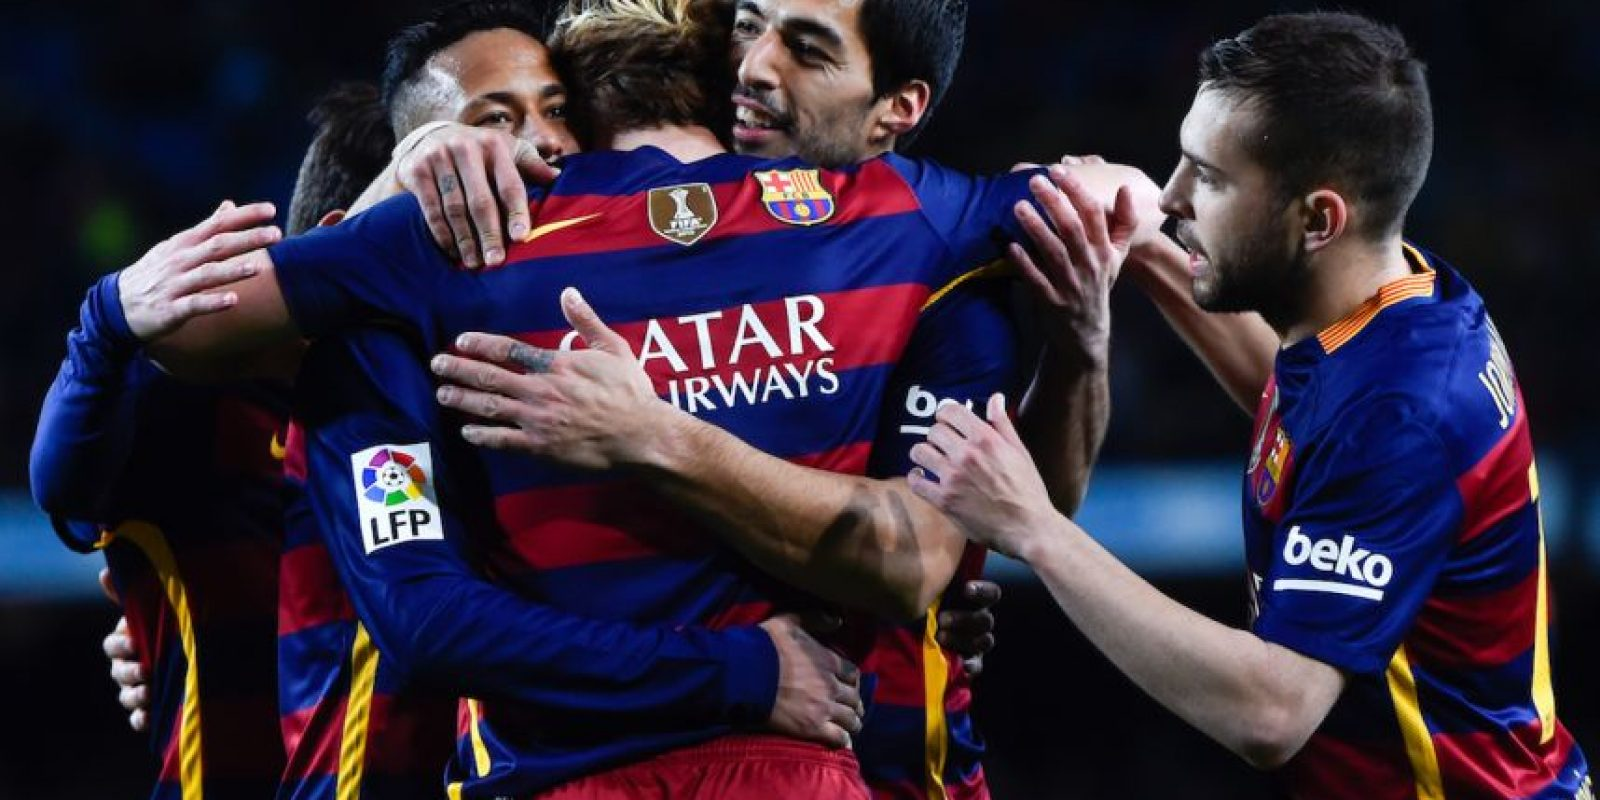 El Barcelona está imparable en la Liga, Copa del Rey y Champions League. Foto: Getty Images